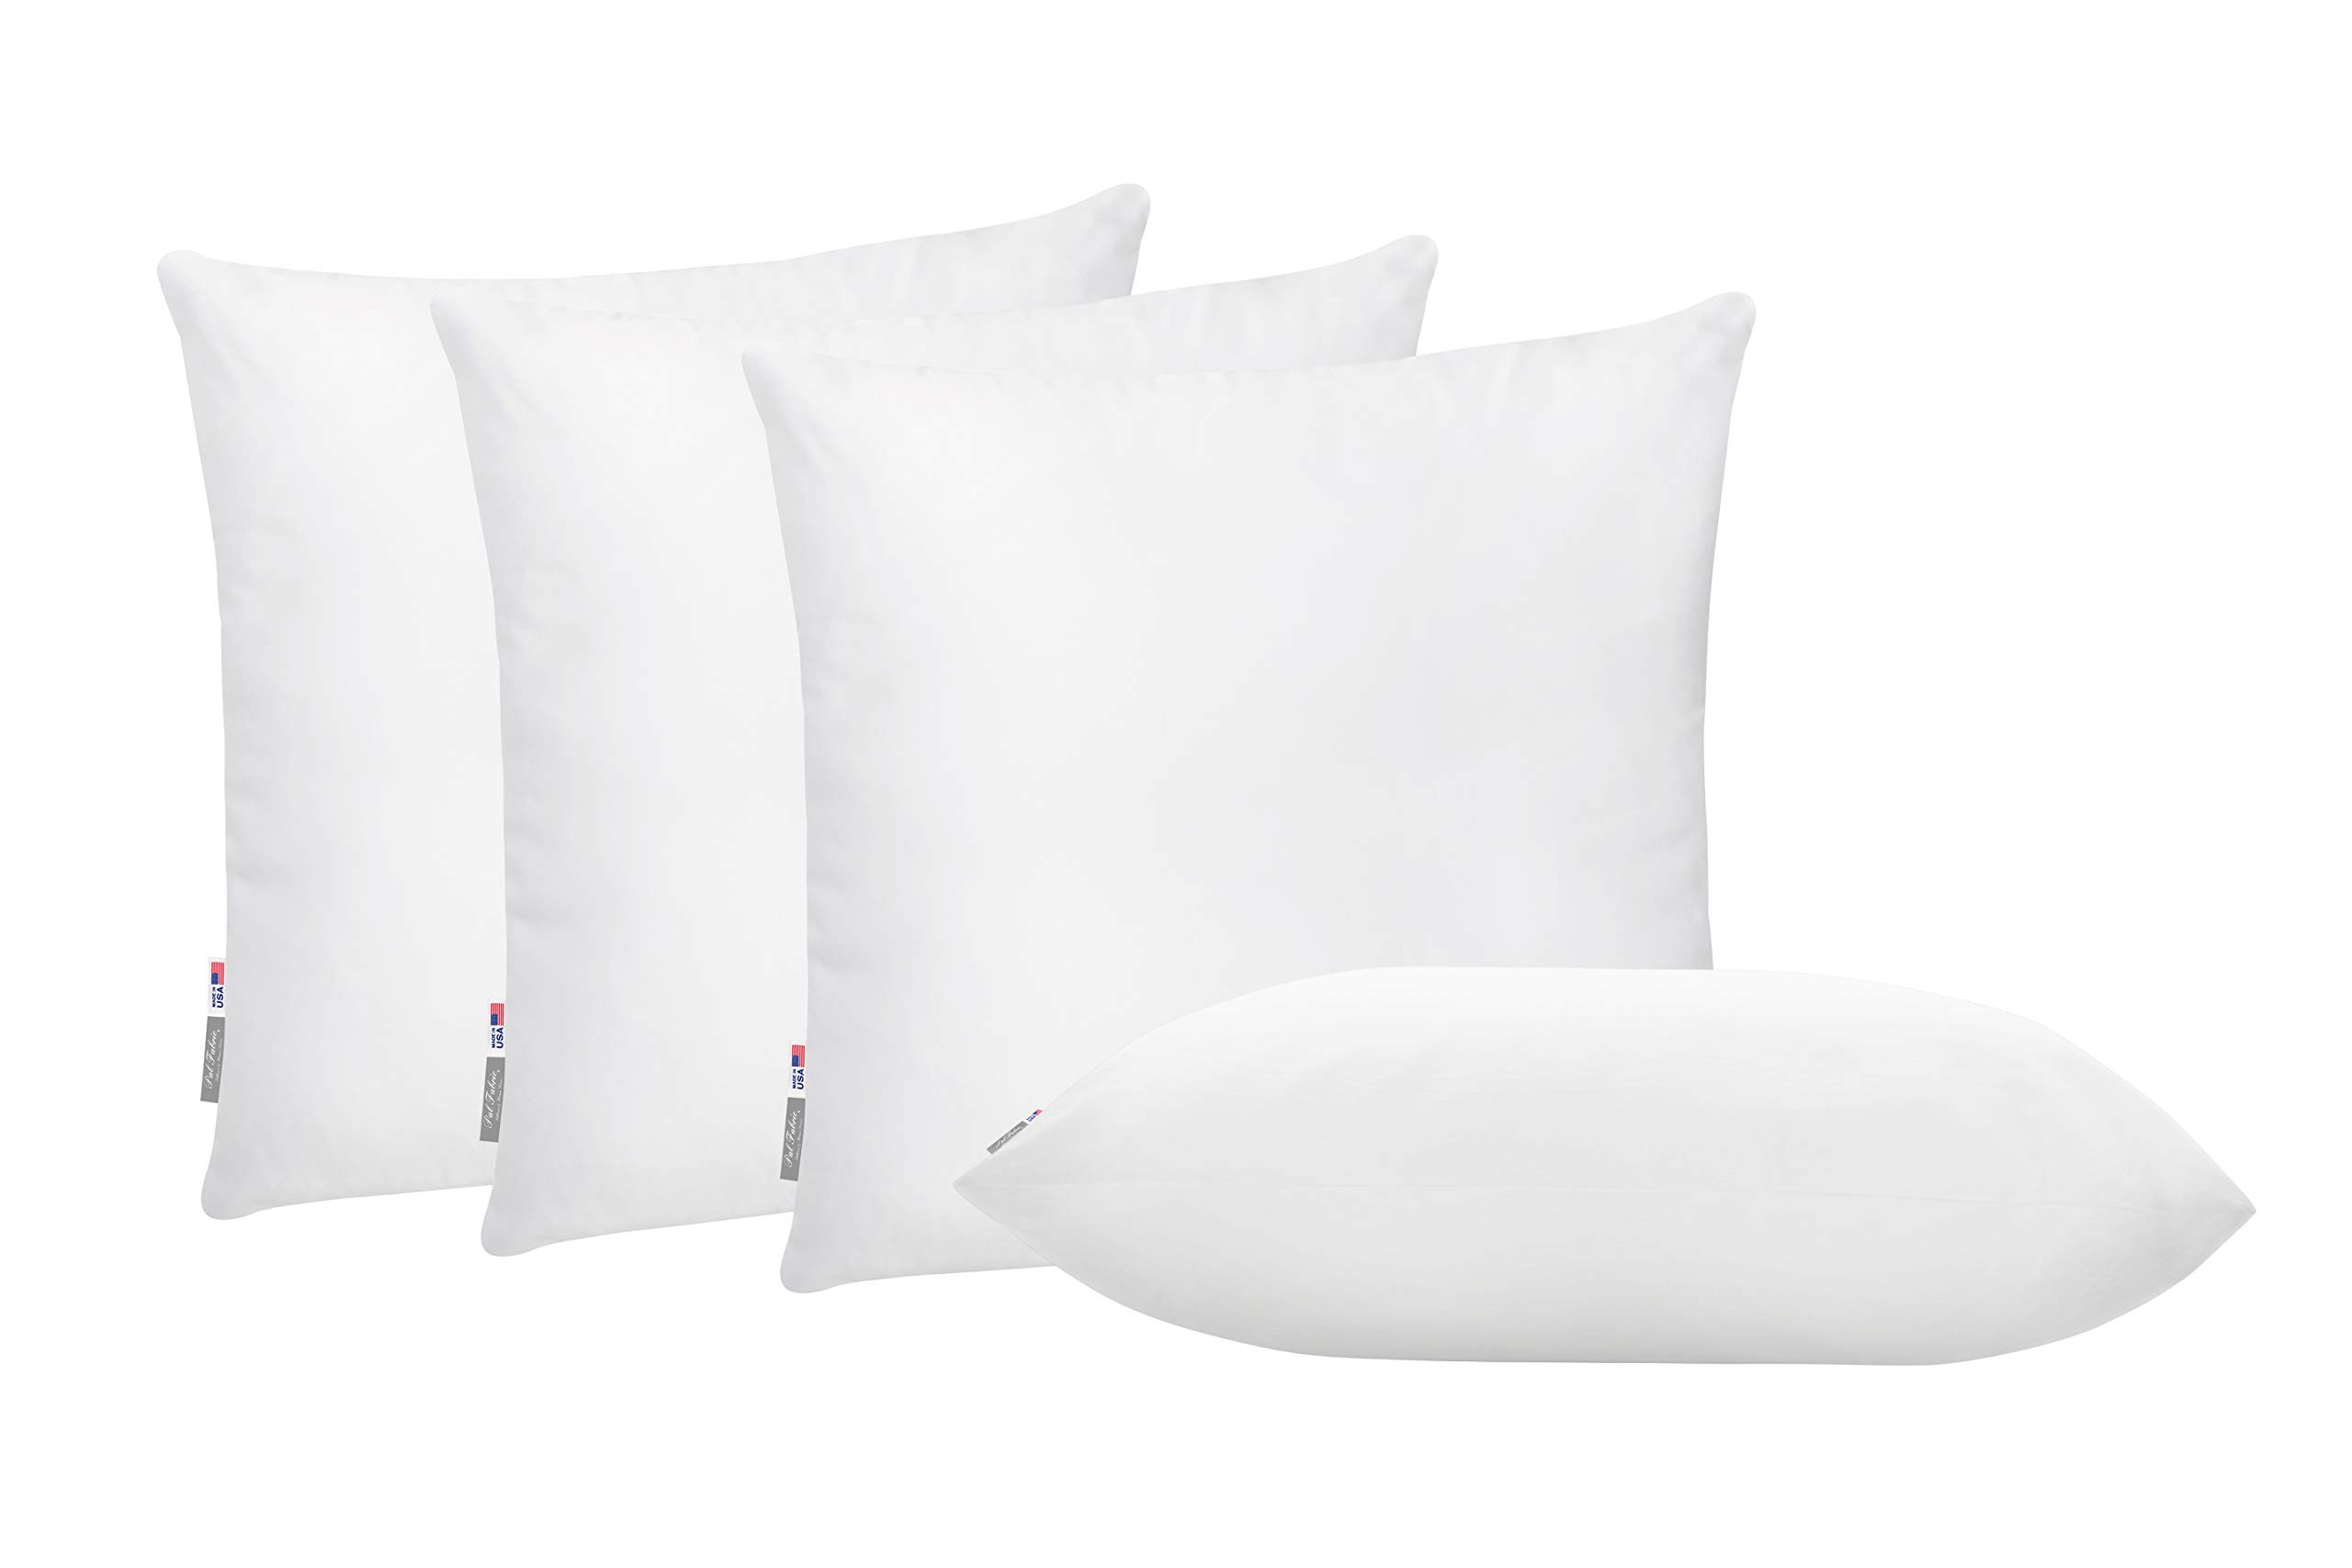 Pal Fabric Pack of 4 Soft Microfiber Square Pillow Insert for Sham or Decorative Pillow Made in USA (22x22)